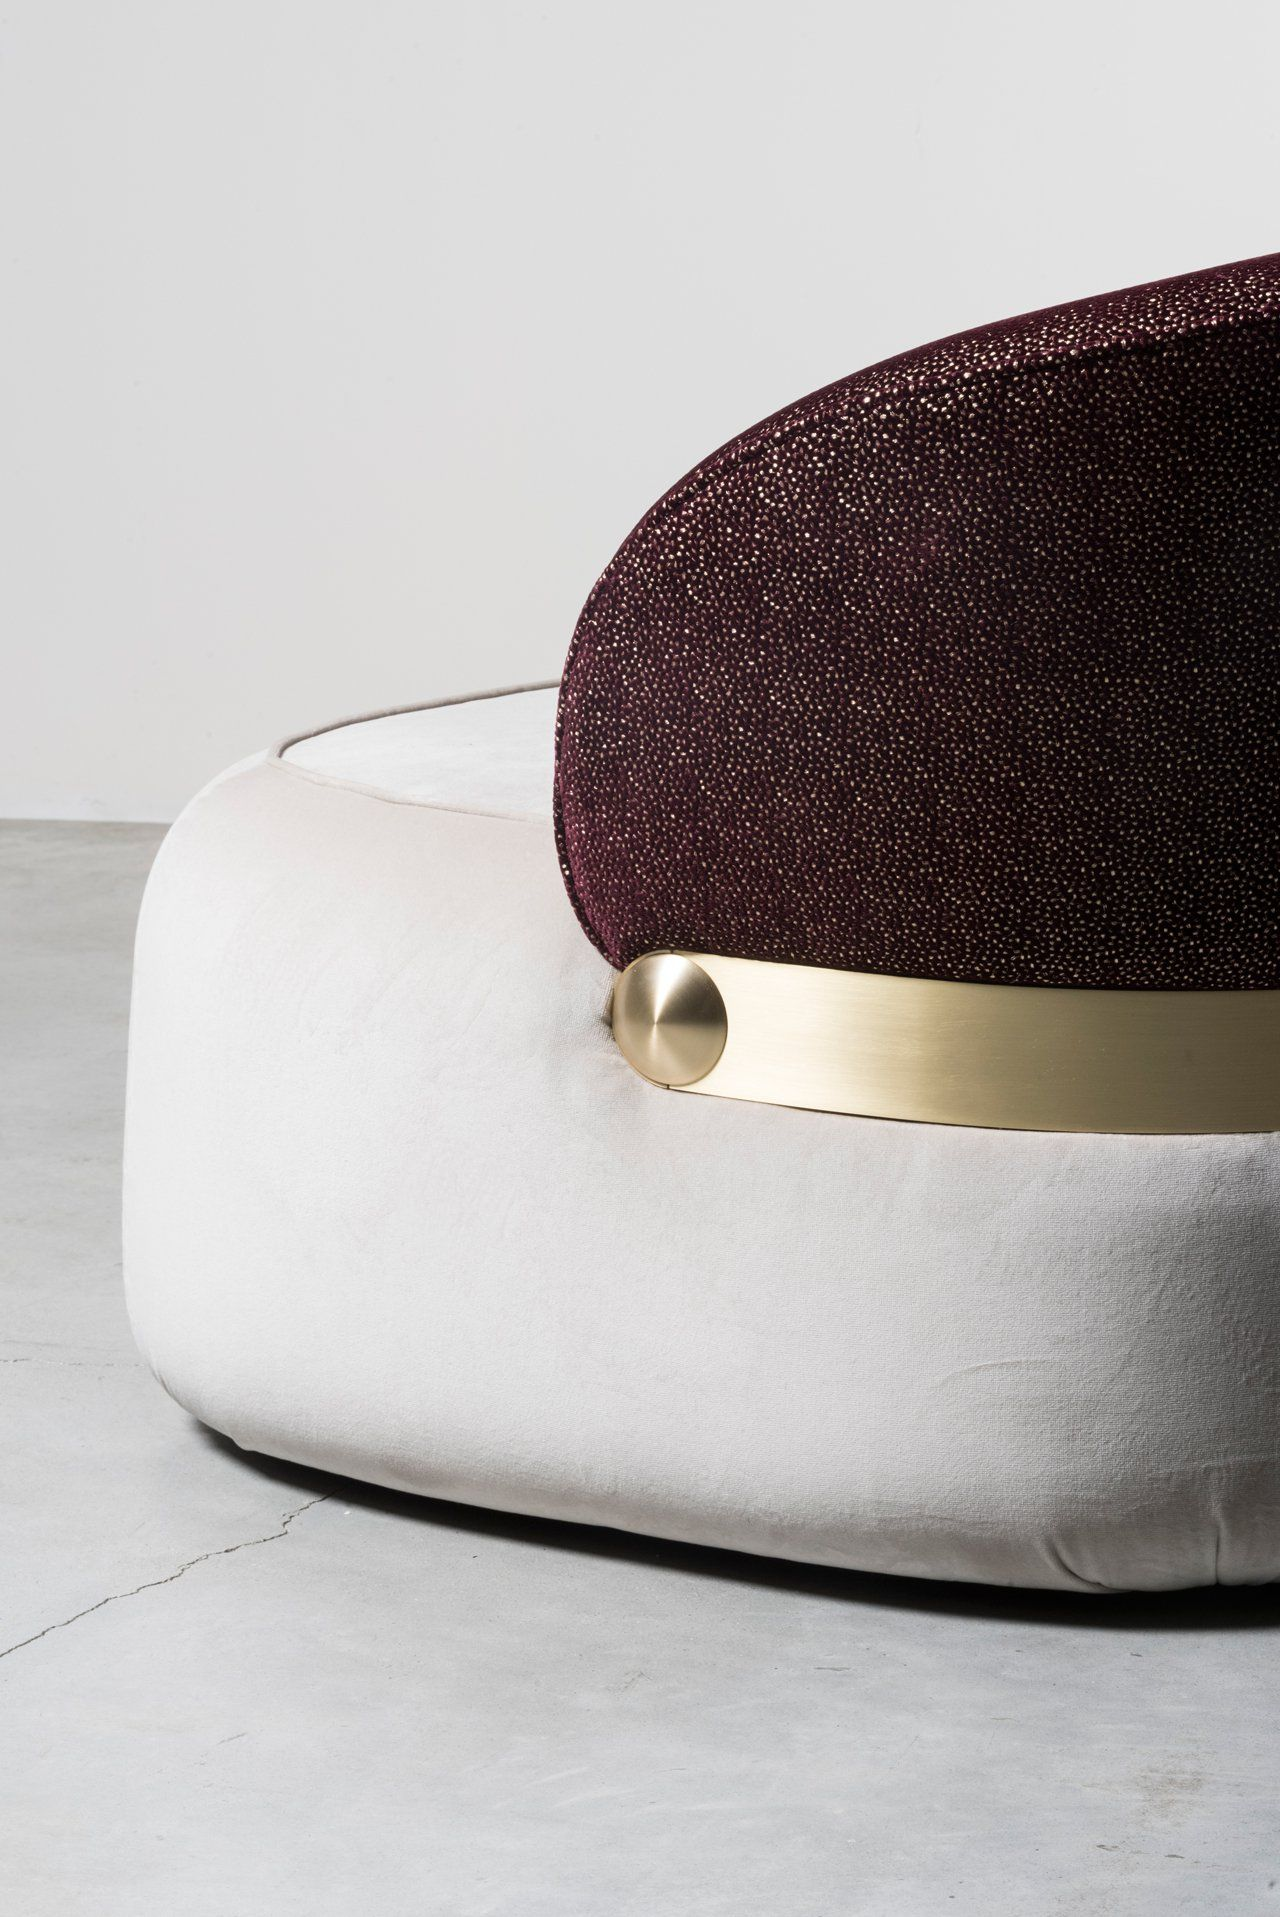 Visiera sofa detail by Cristina Celestino for Nilufar gallery